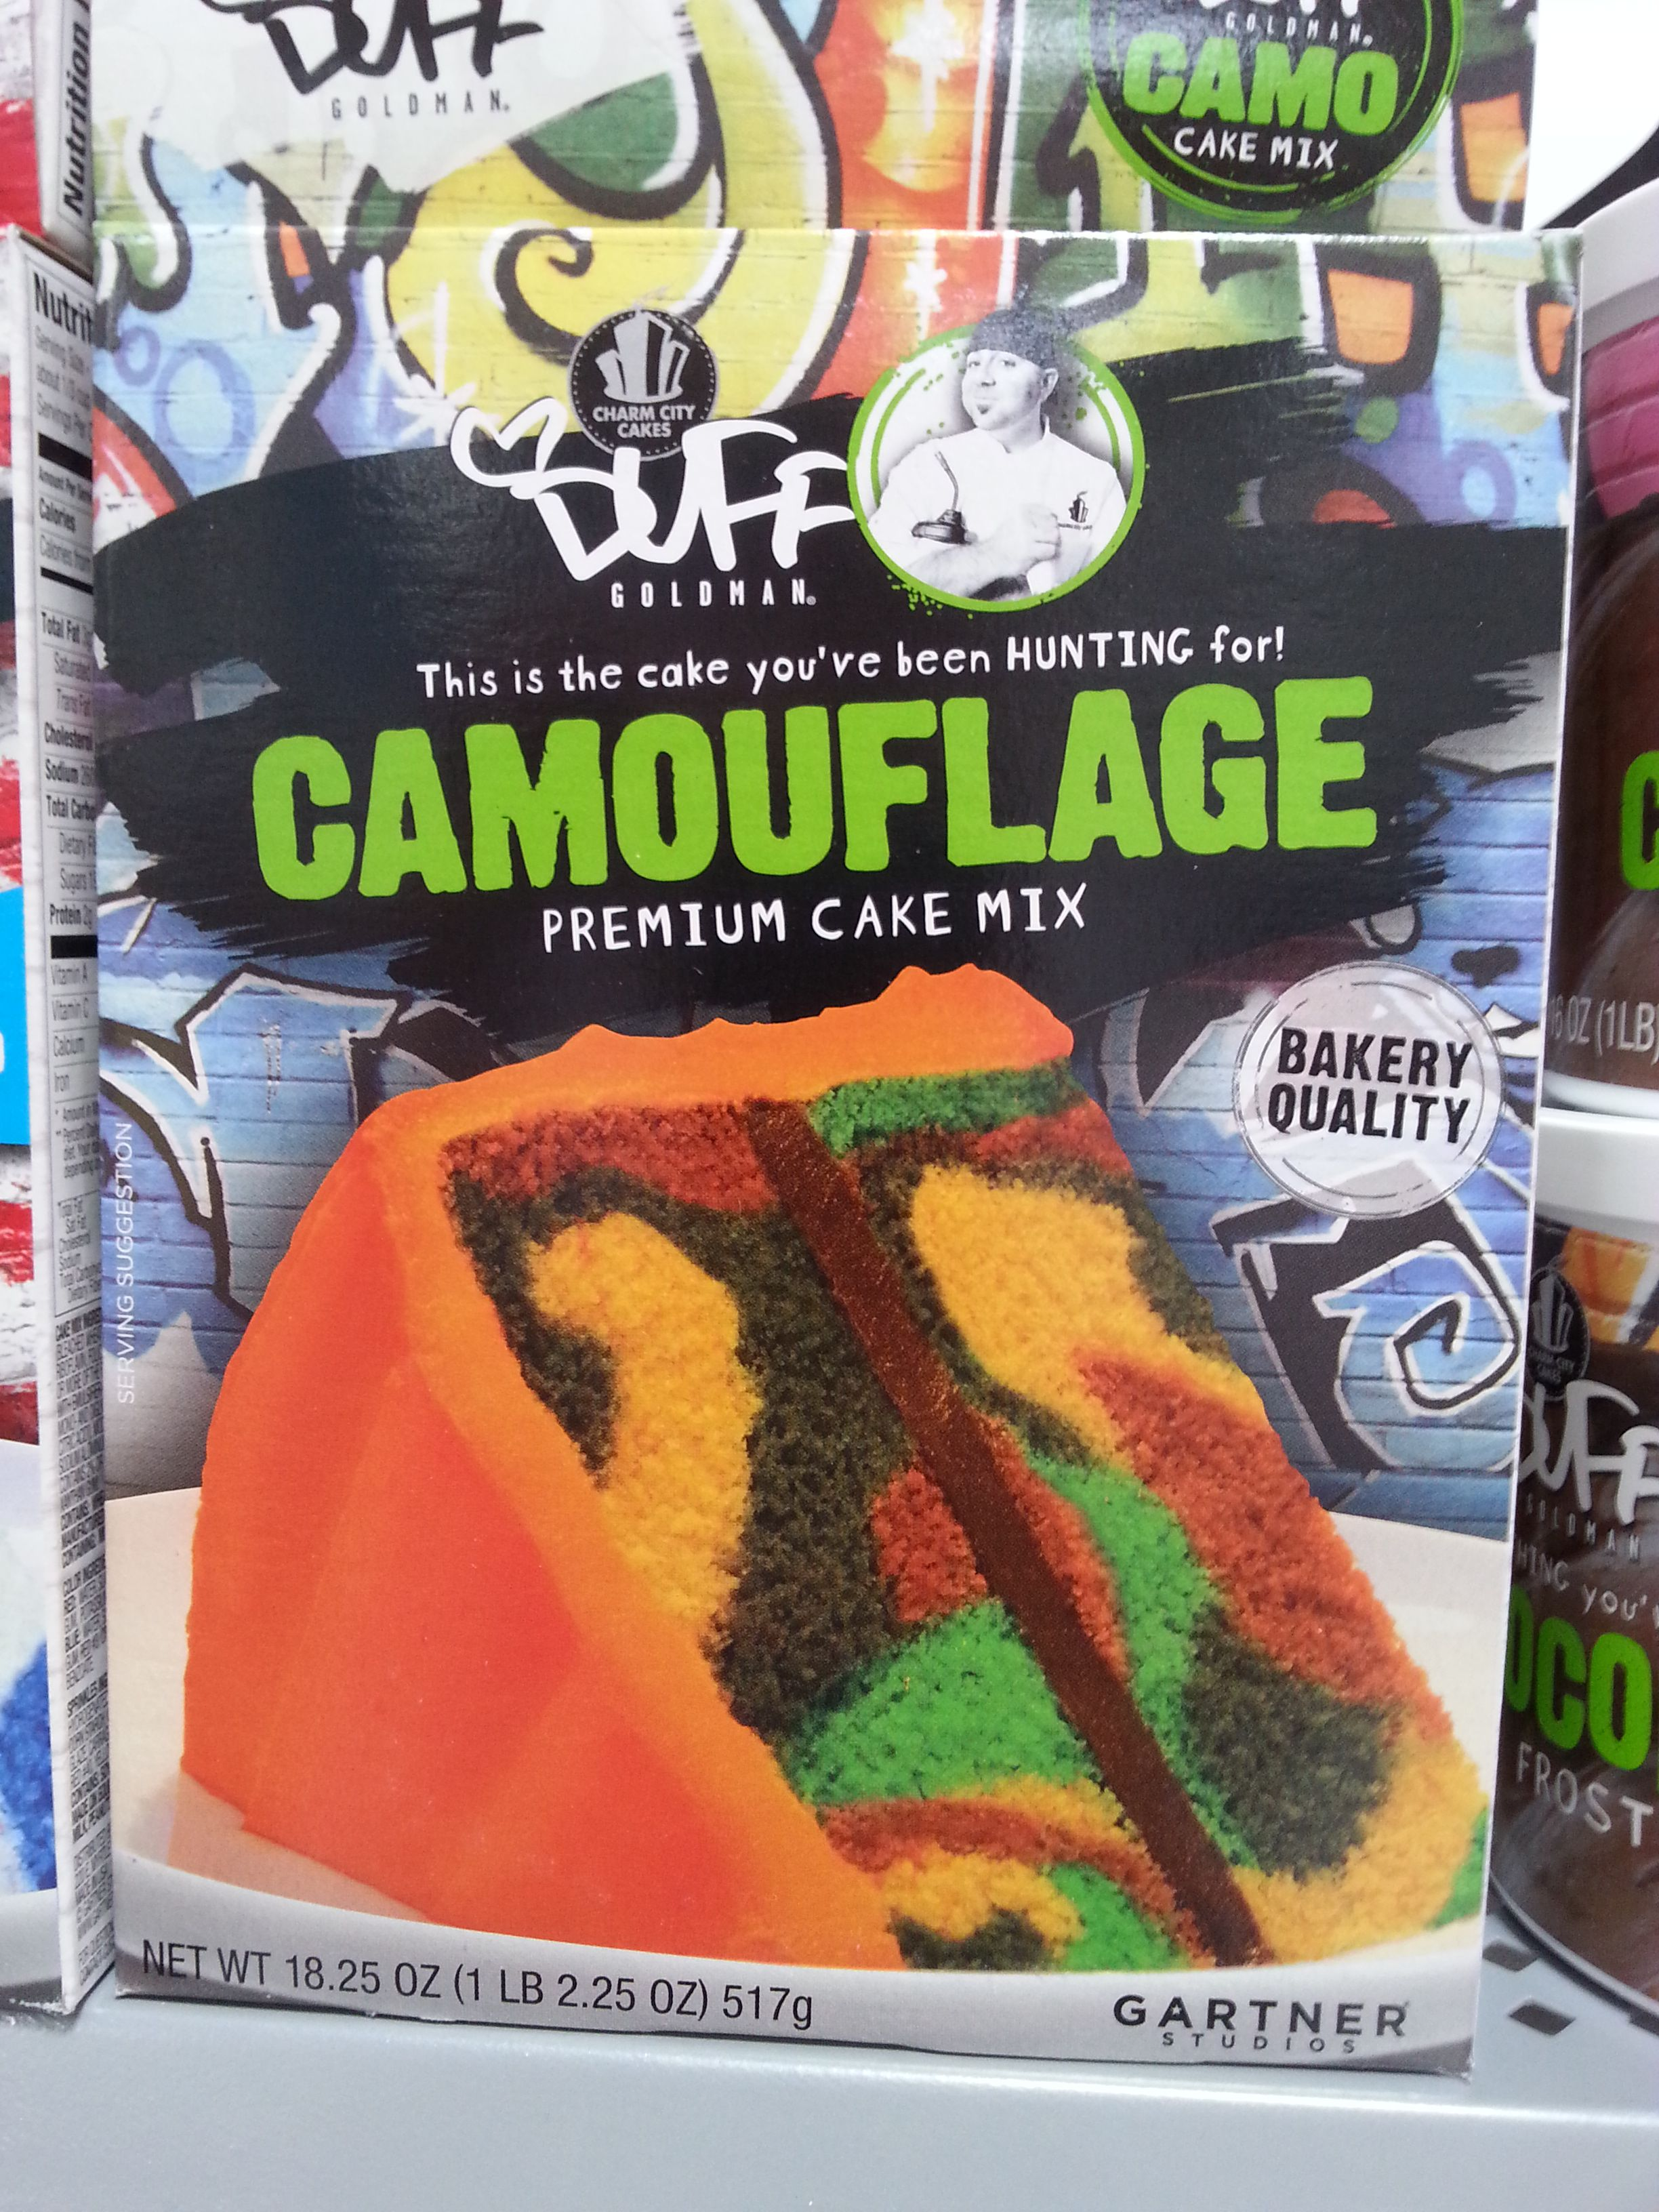 Went To Walmart Today Saw This Camouflage Cake Mix Its The Youve Been Hunting For